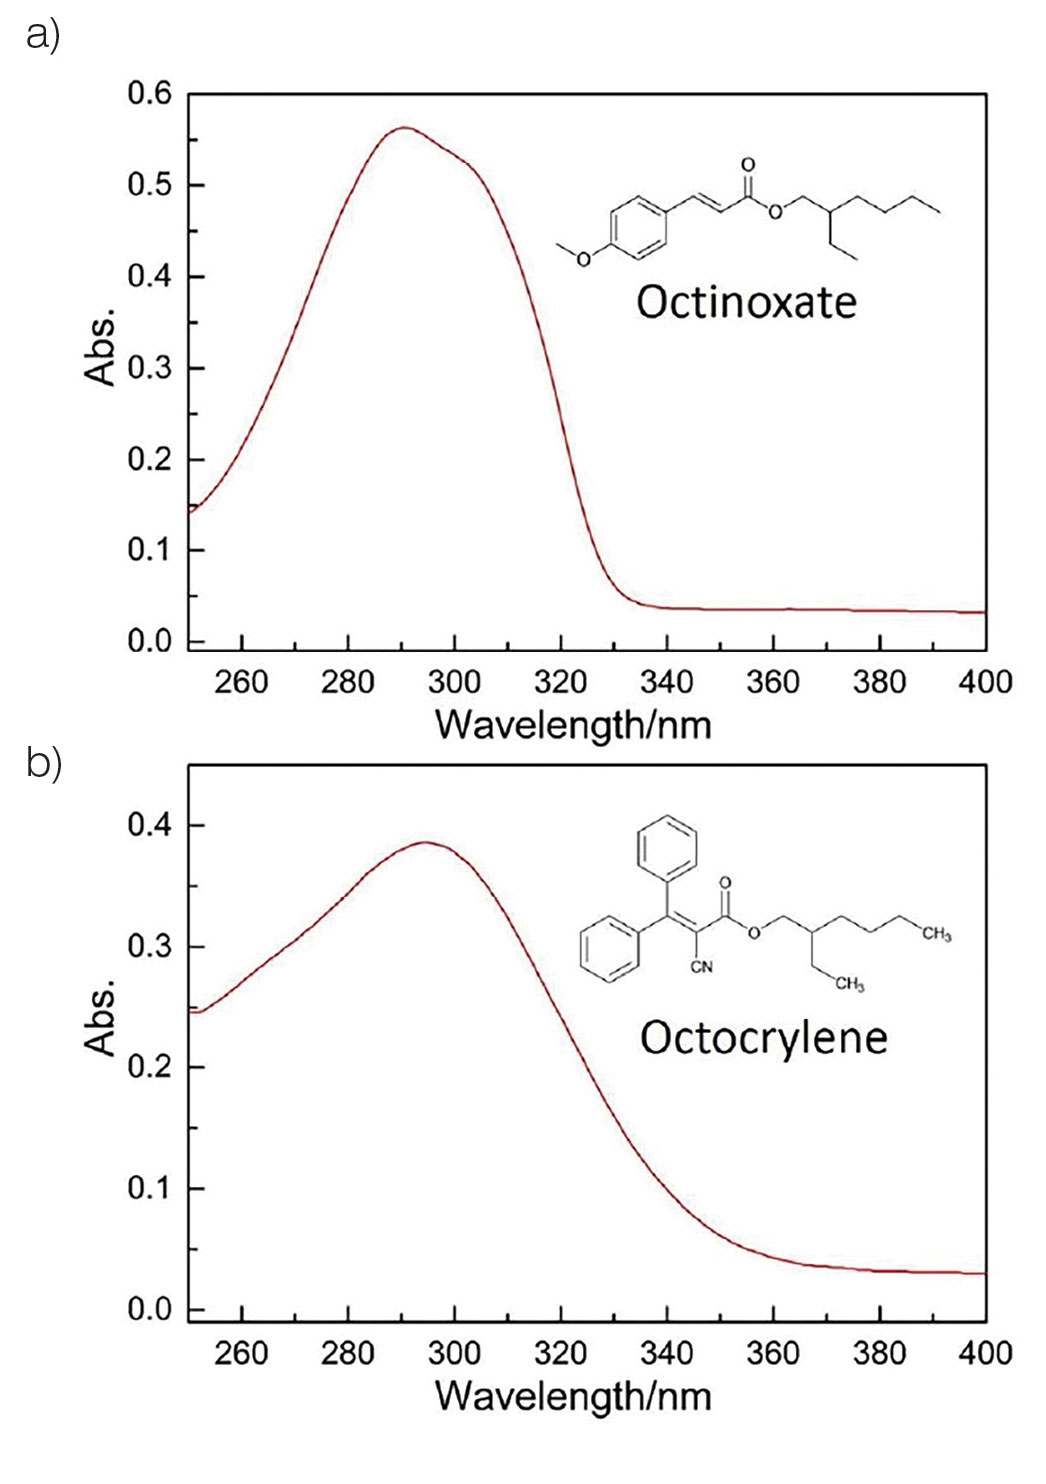 Figure 9. UV-vis spectrum of octinoxate (a) and octocrylene (b) (2.0 × 10<sup>-5</sup> M solution in cyclohexane)